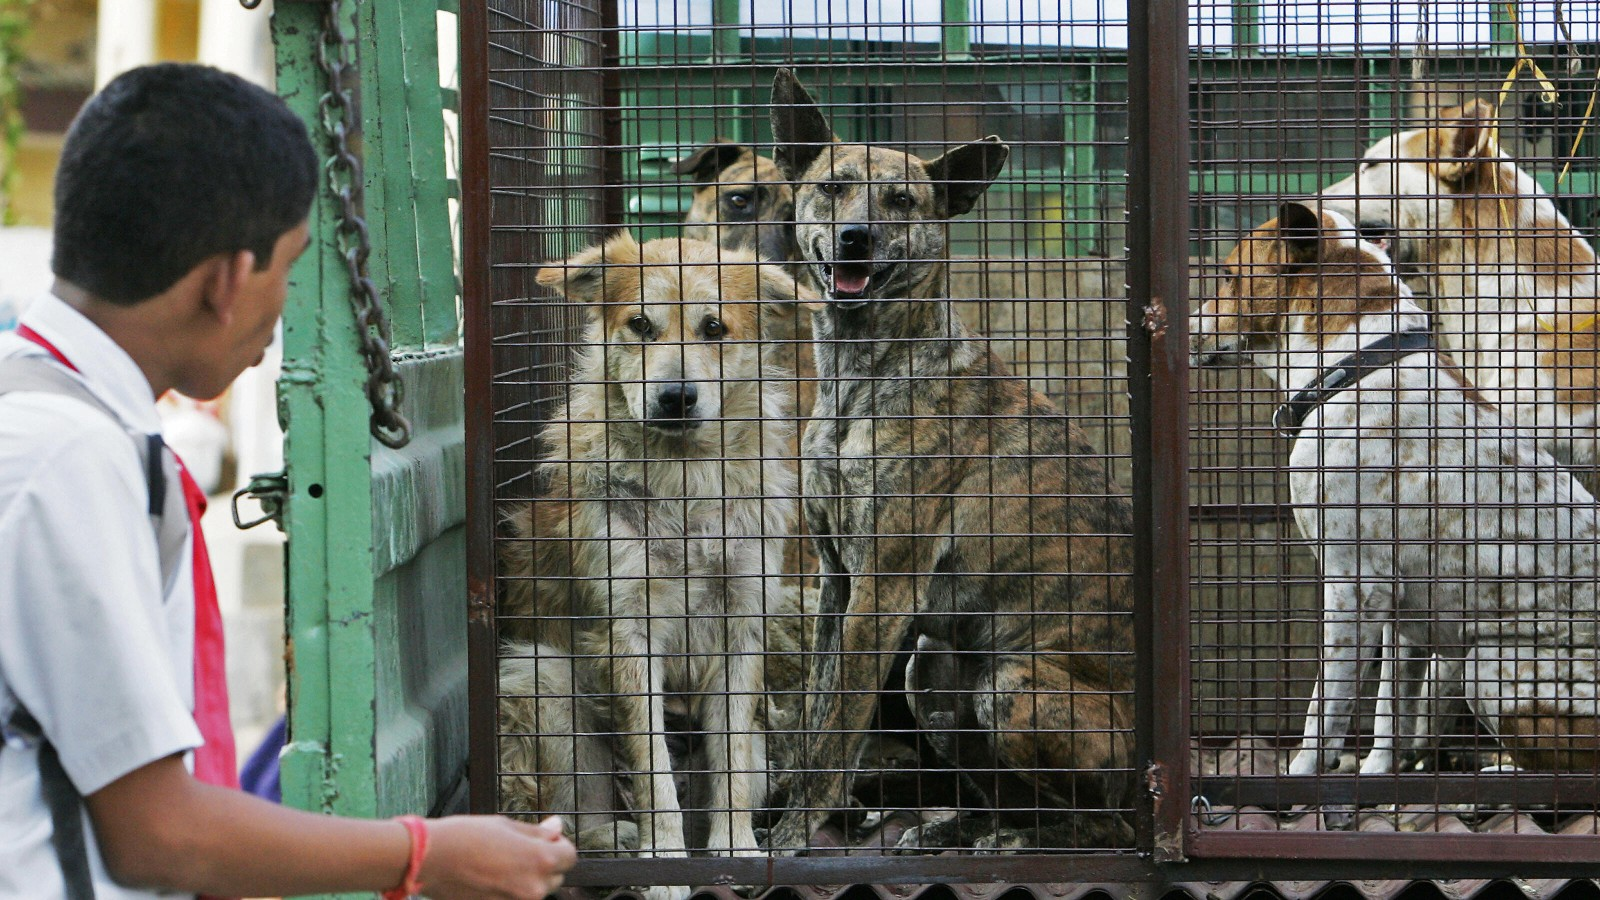 Stray dogs and coronavirus: Just a hypothetical theory with no proof